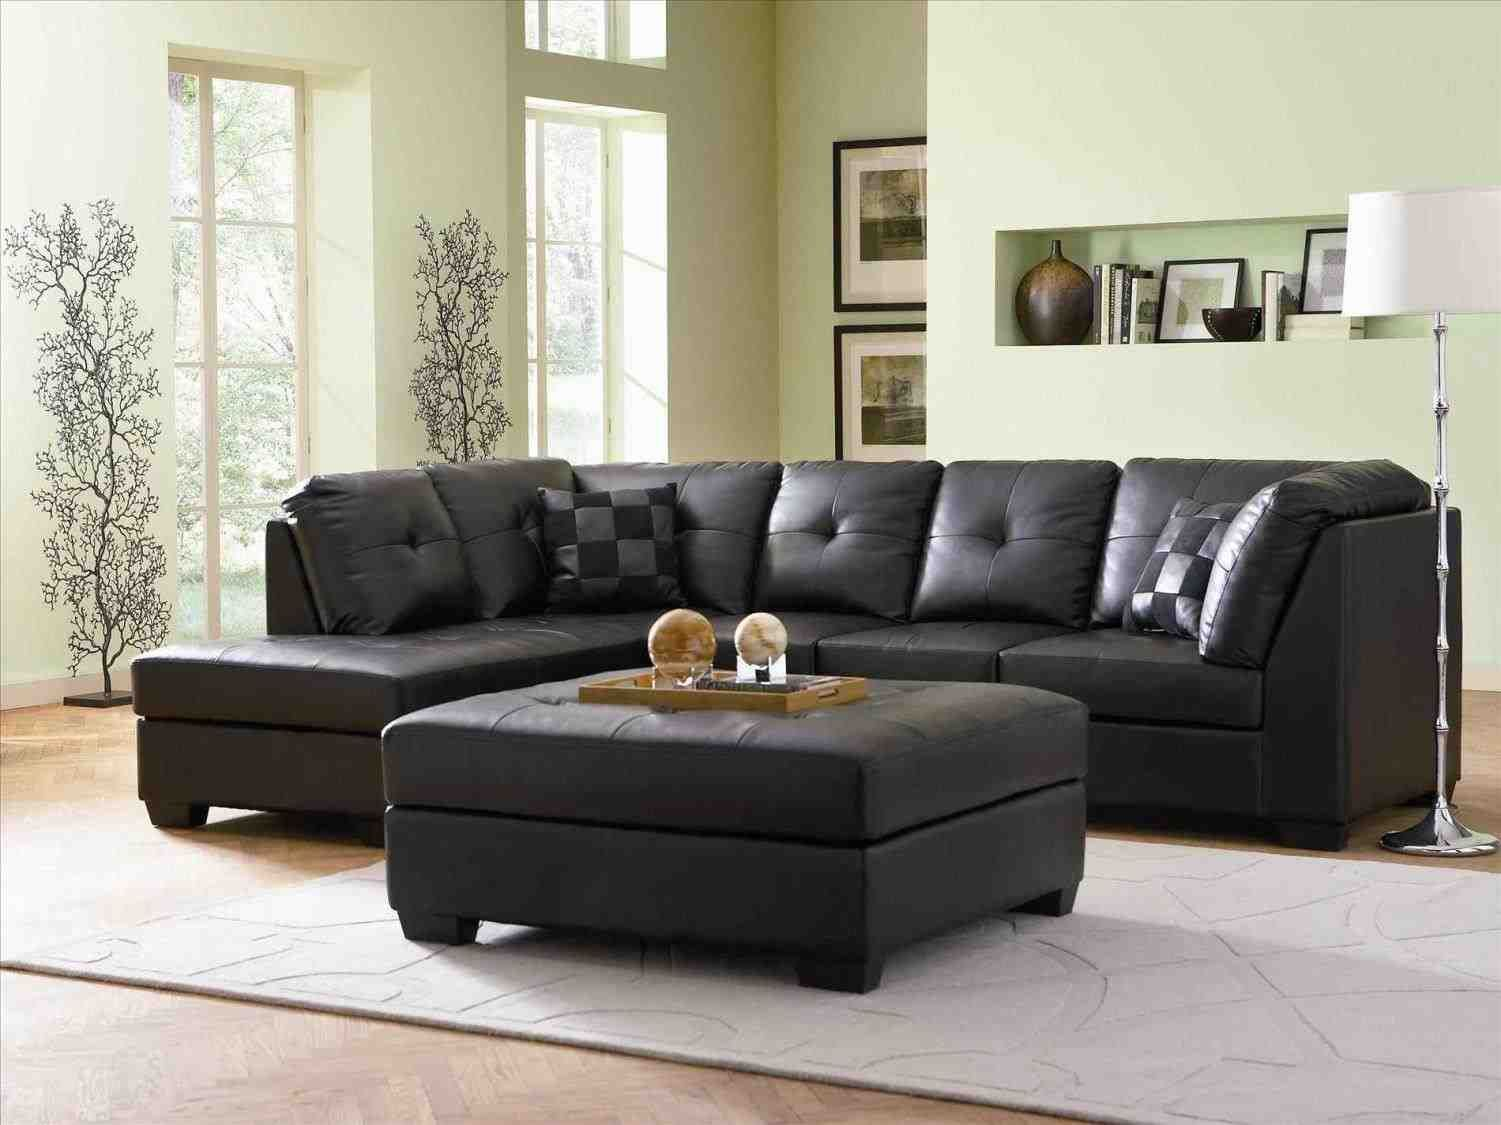 Superb Cheap Leather Sofas Glasgow Brown Leatherofas Dark Caraccident5 Cool Chair Designs And Ideas Caraccident5Info